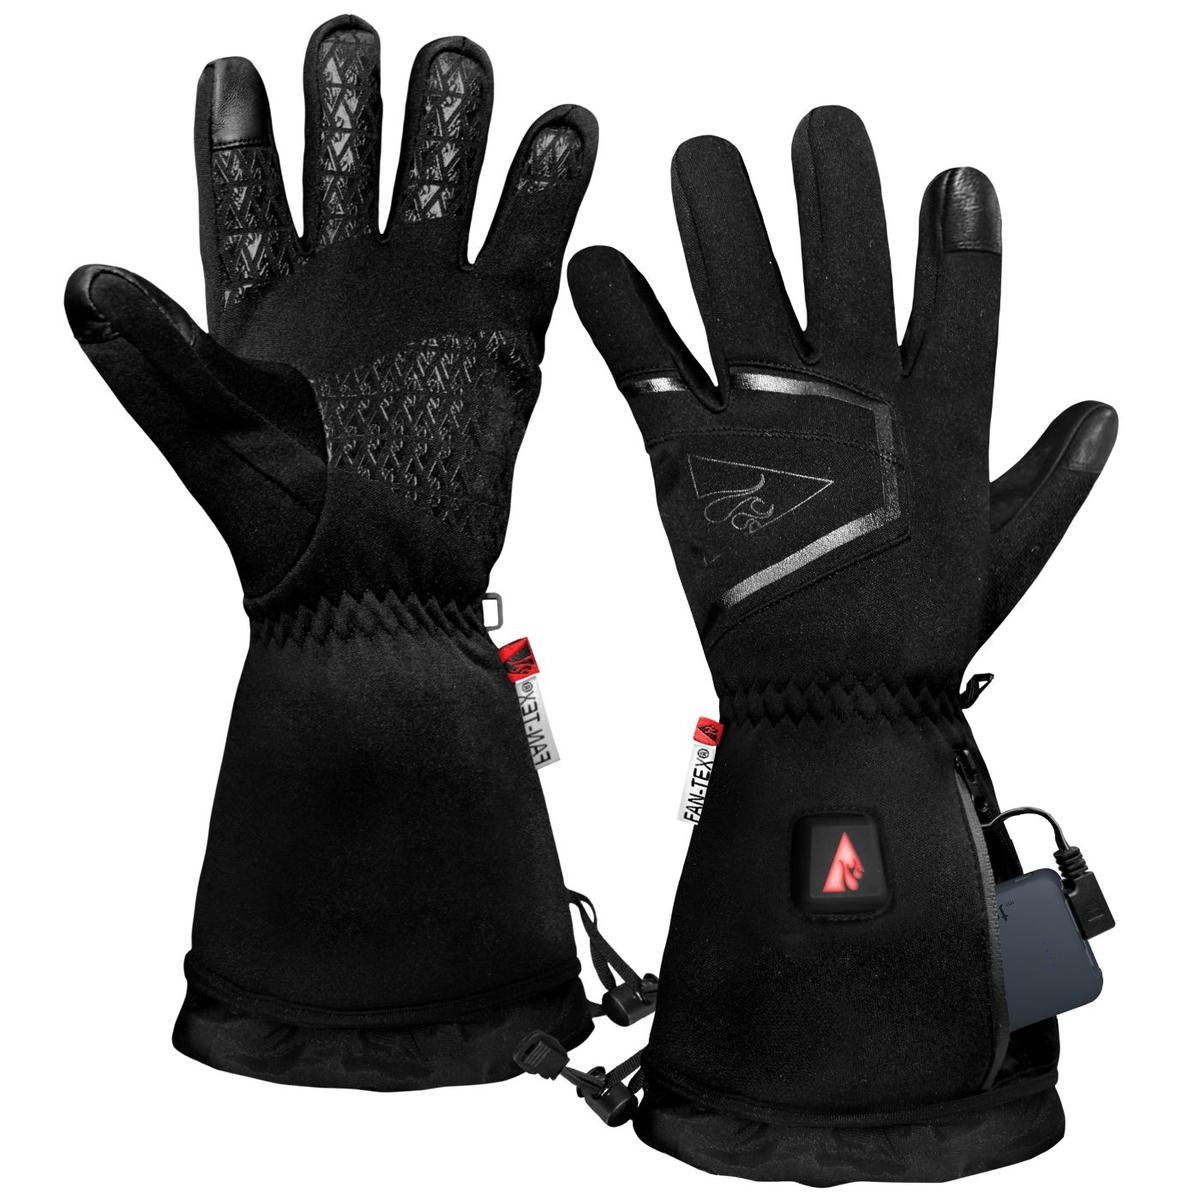 ActionHeat 5V Women's Featherweight Heated Gloves - Heated